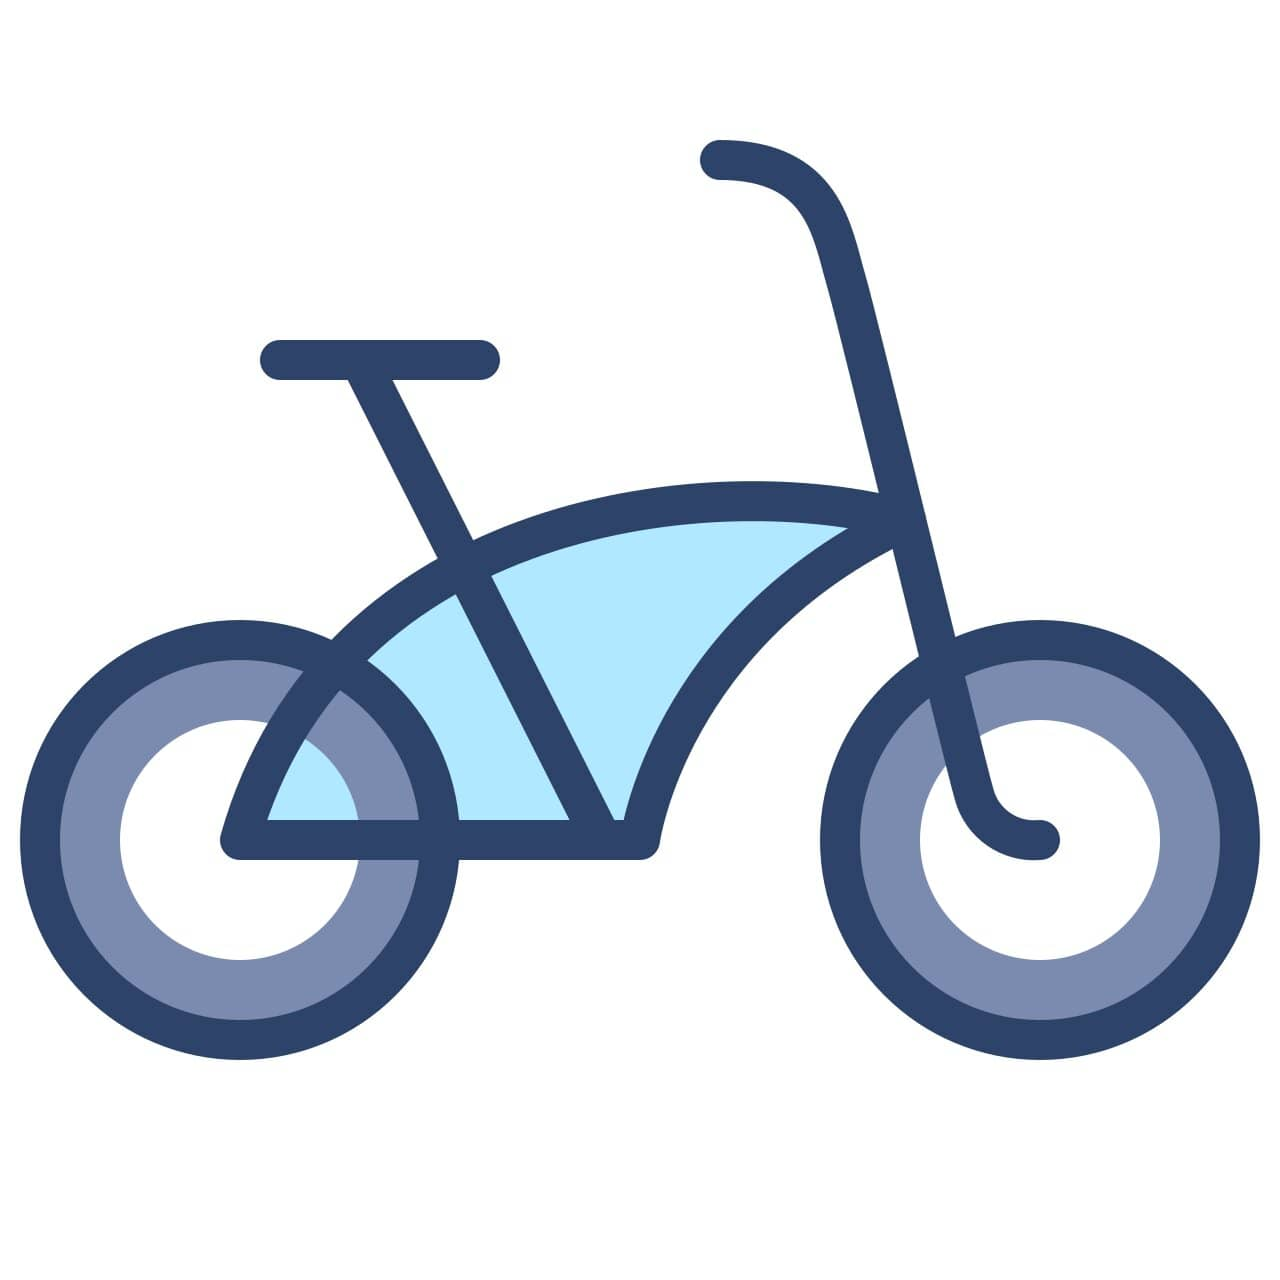 Cycle to work scheme icon